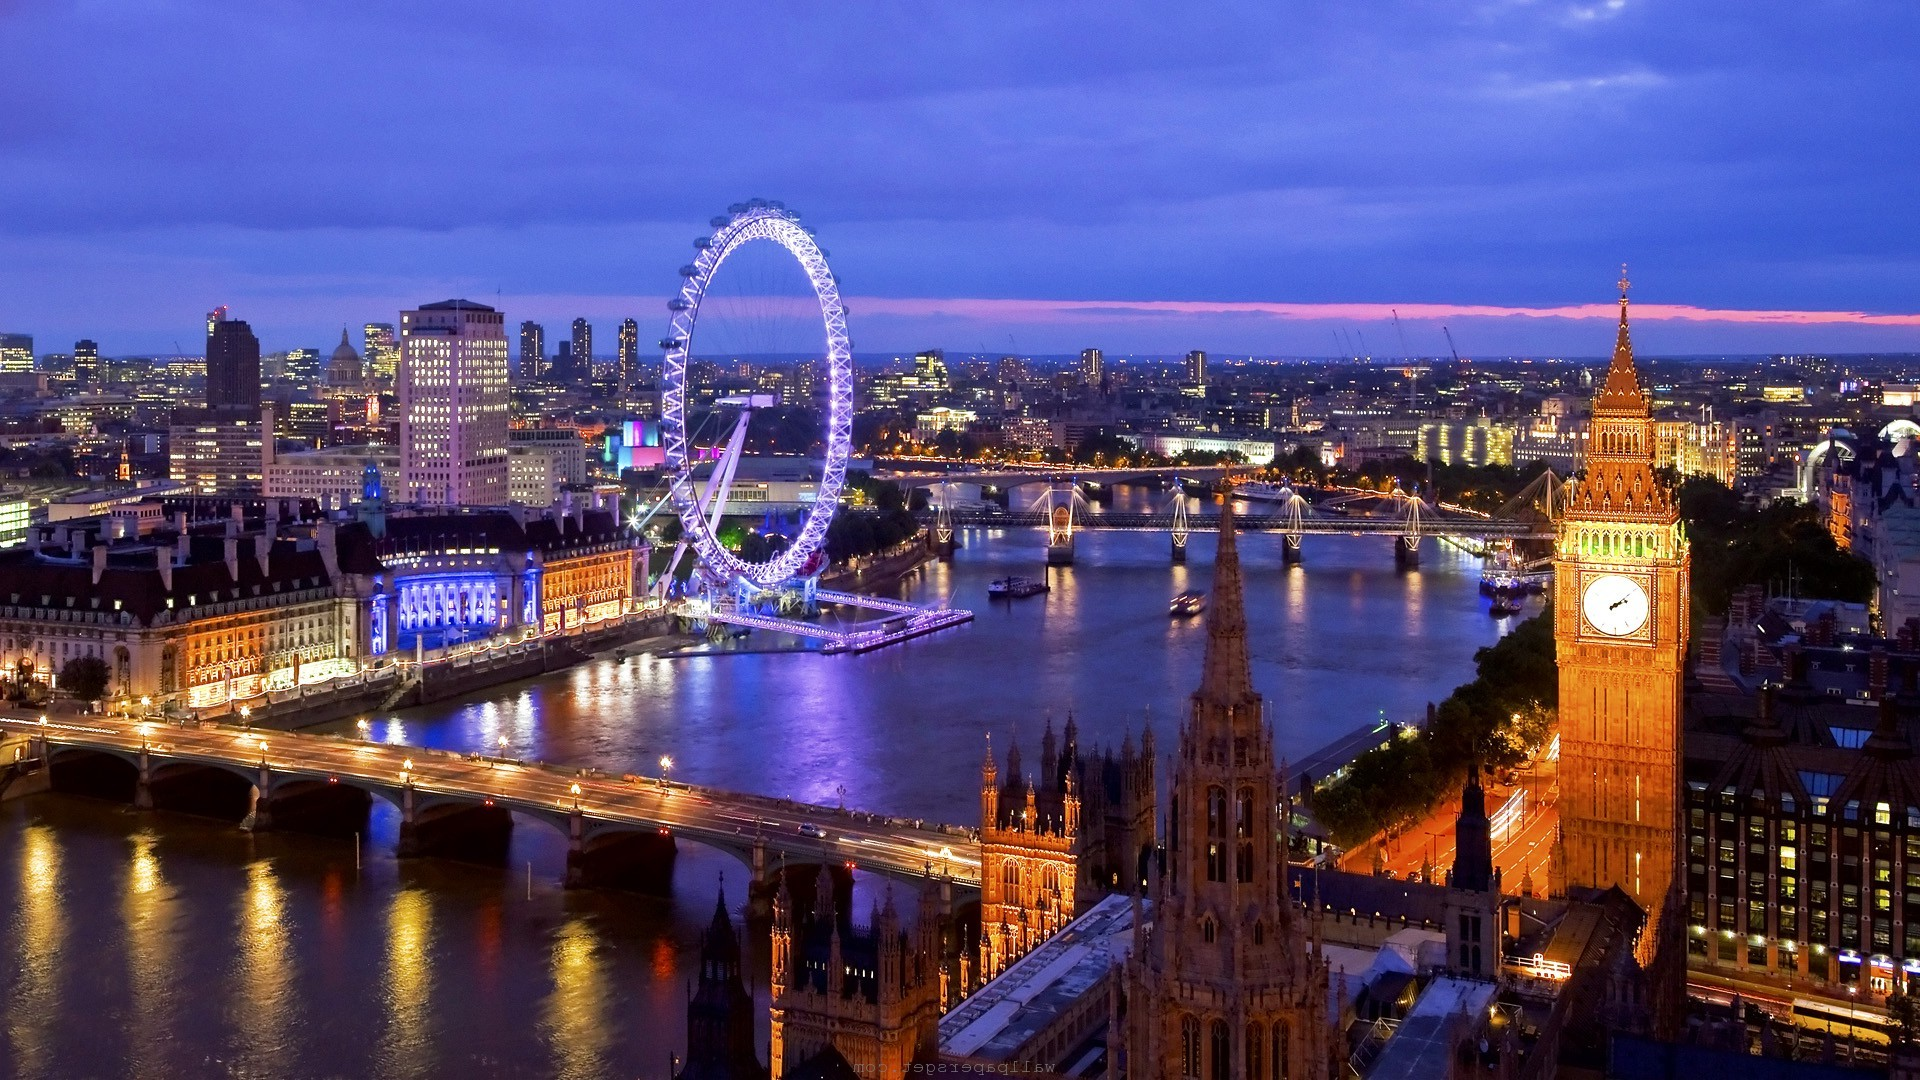 london-at-night-hd-zzx27hei-e1395682633110